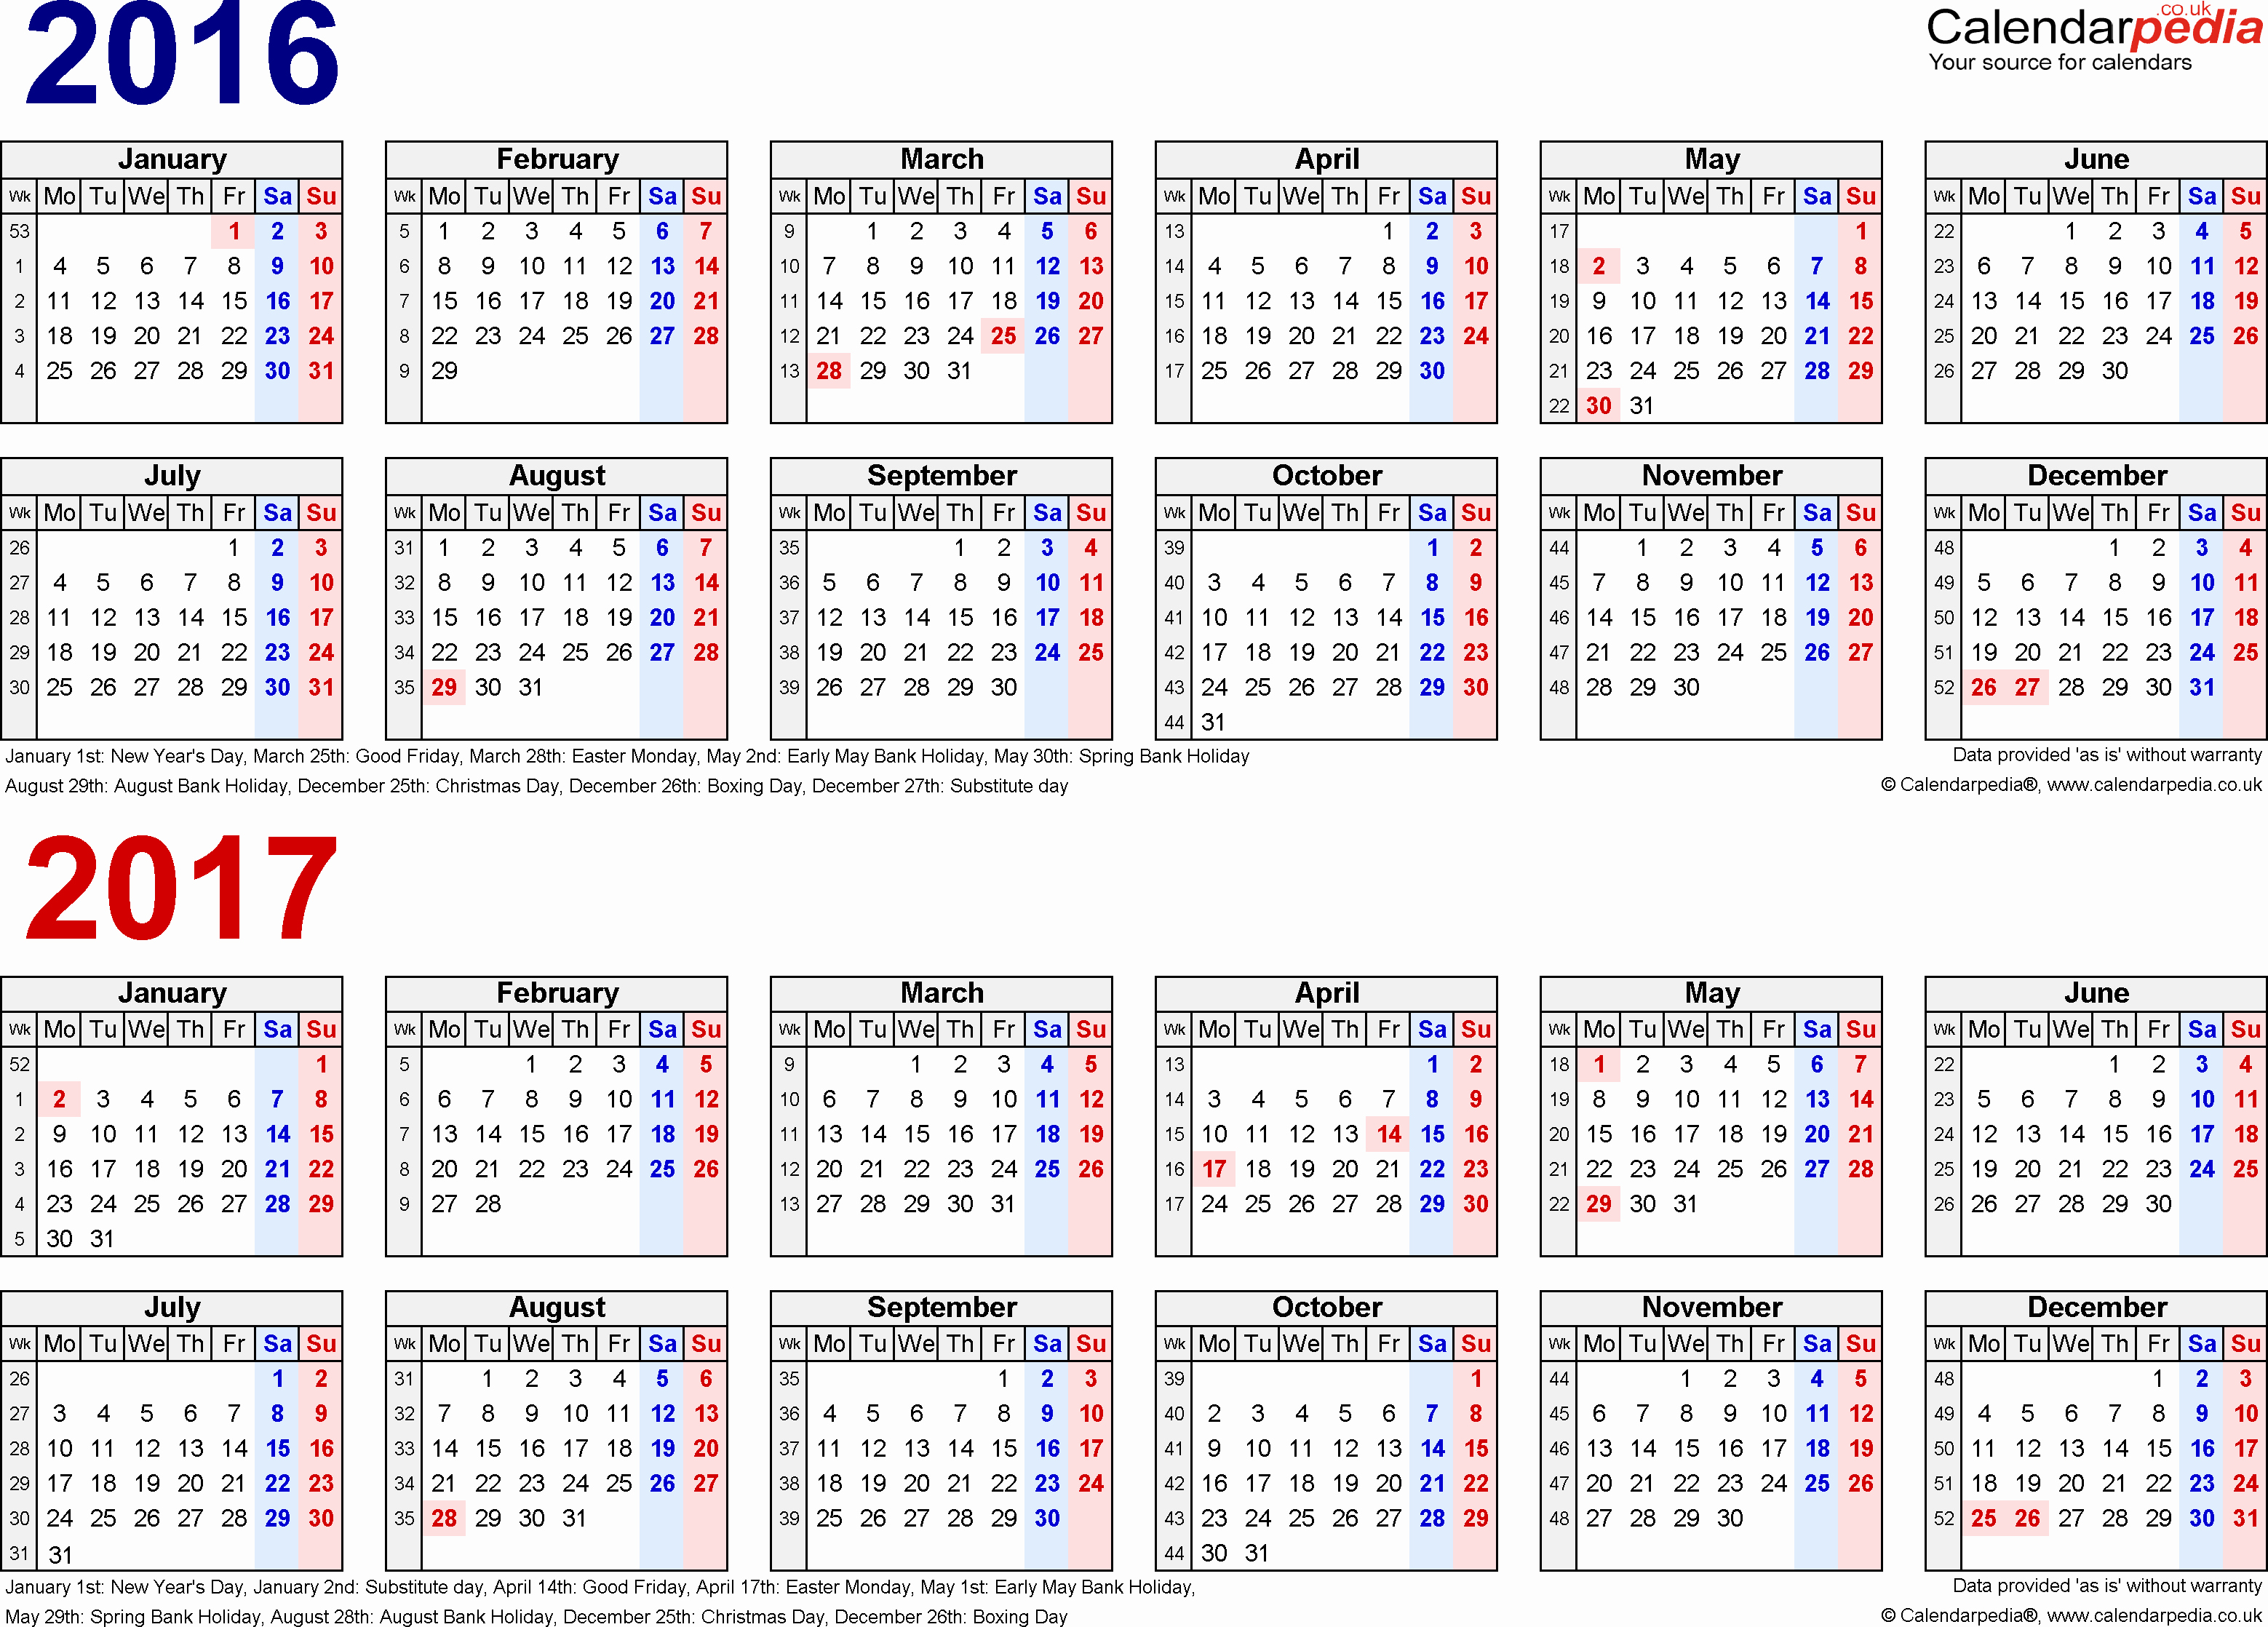 2016 2017 School Calendar Template Unique Two Year Calendars for 2016 & 2017 Uk for Pdf